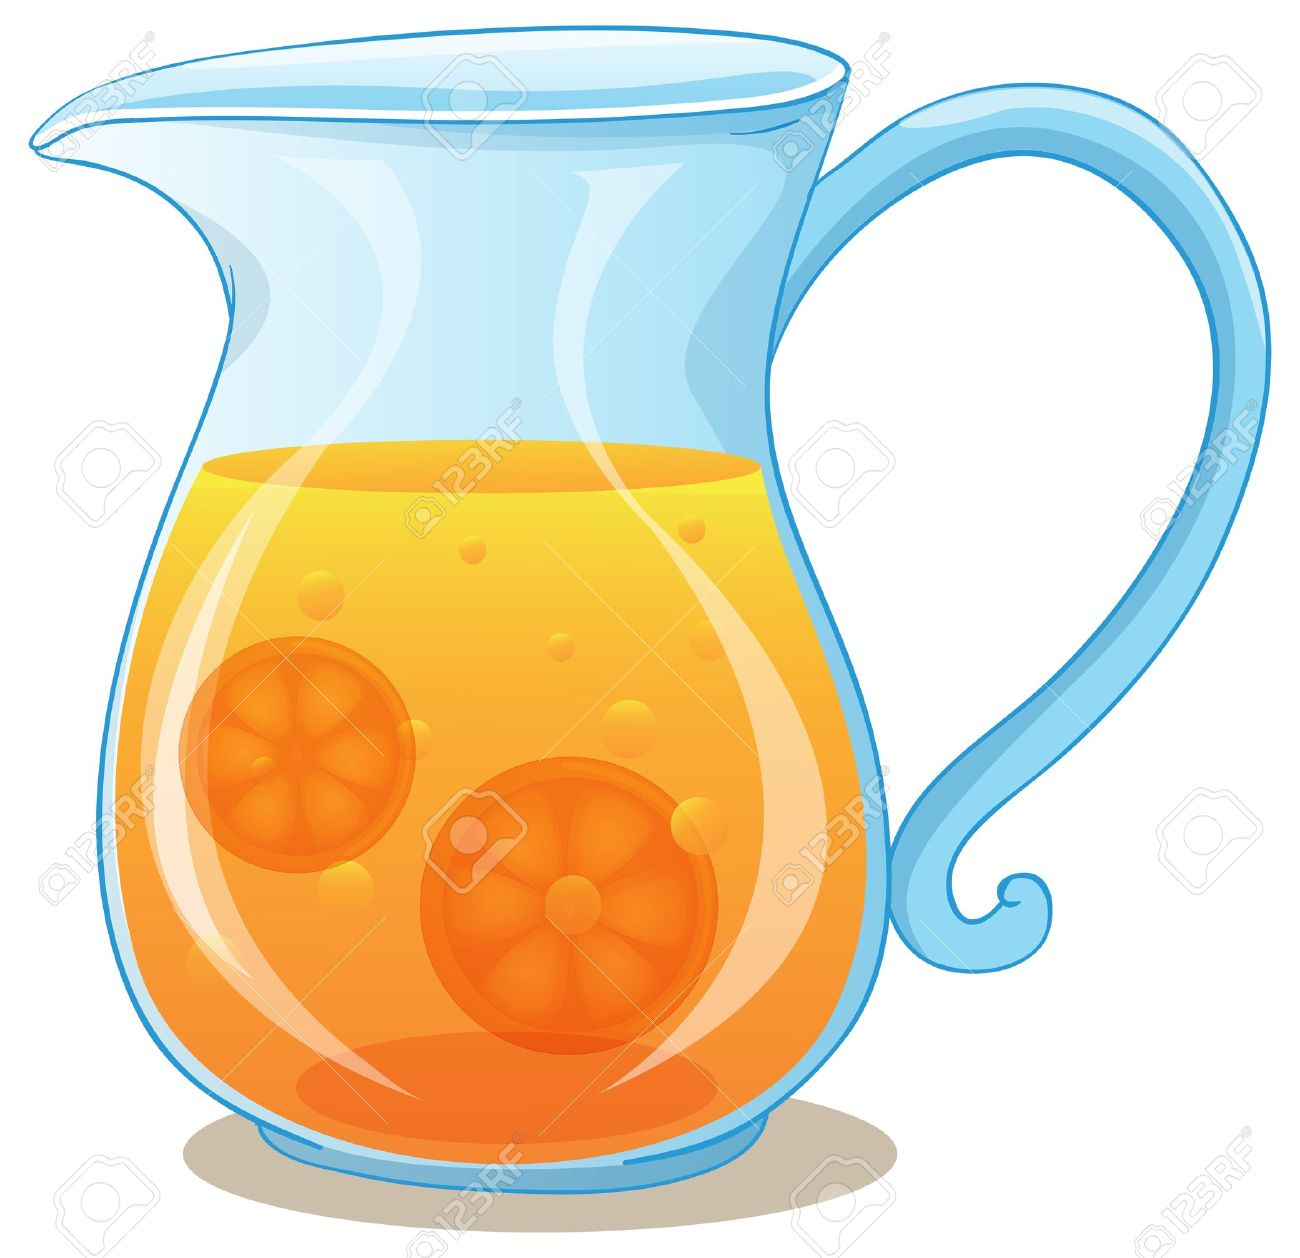 water jug: Illustration of a .